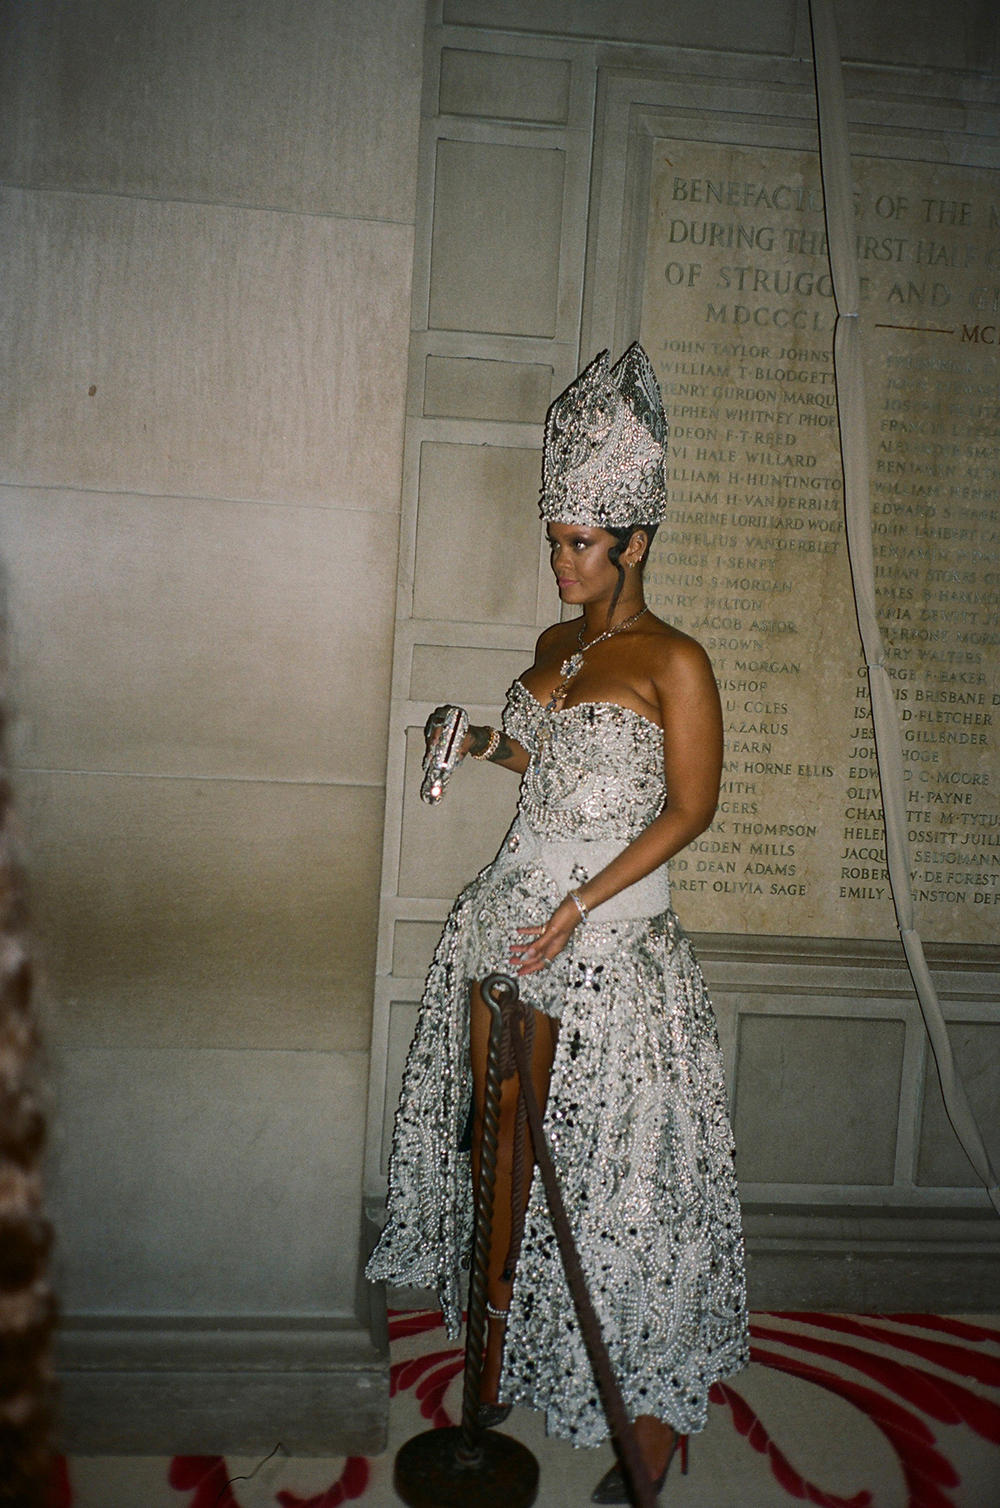 Met Gala 2018 Rihanna Pope John Galliano Maison Margiela Candid Film Photo